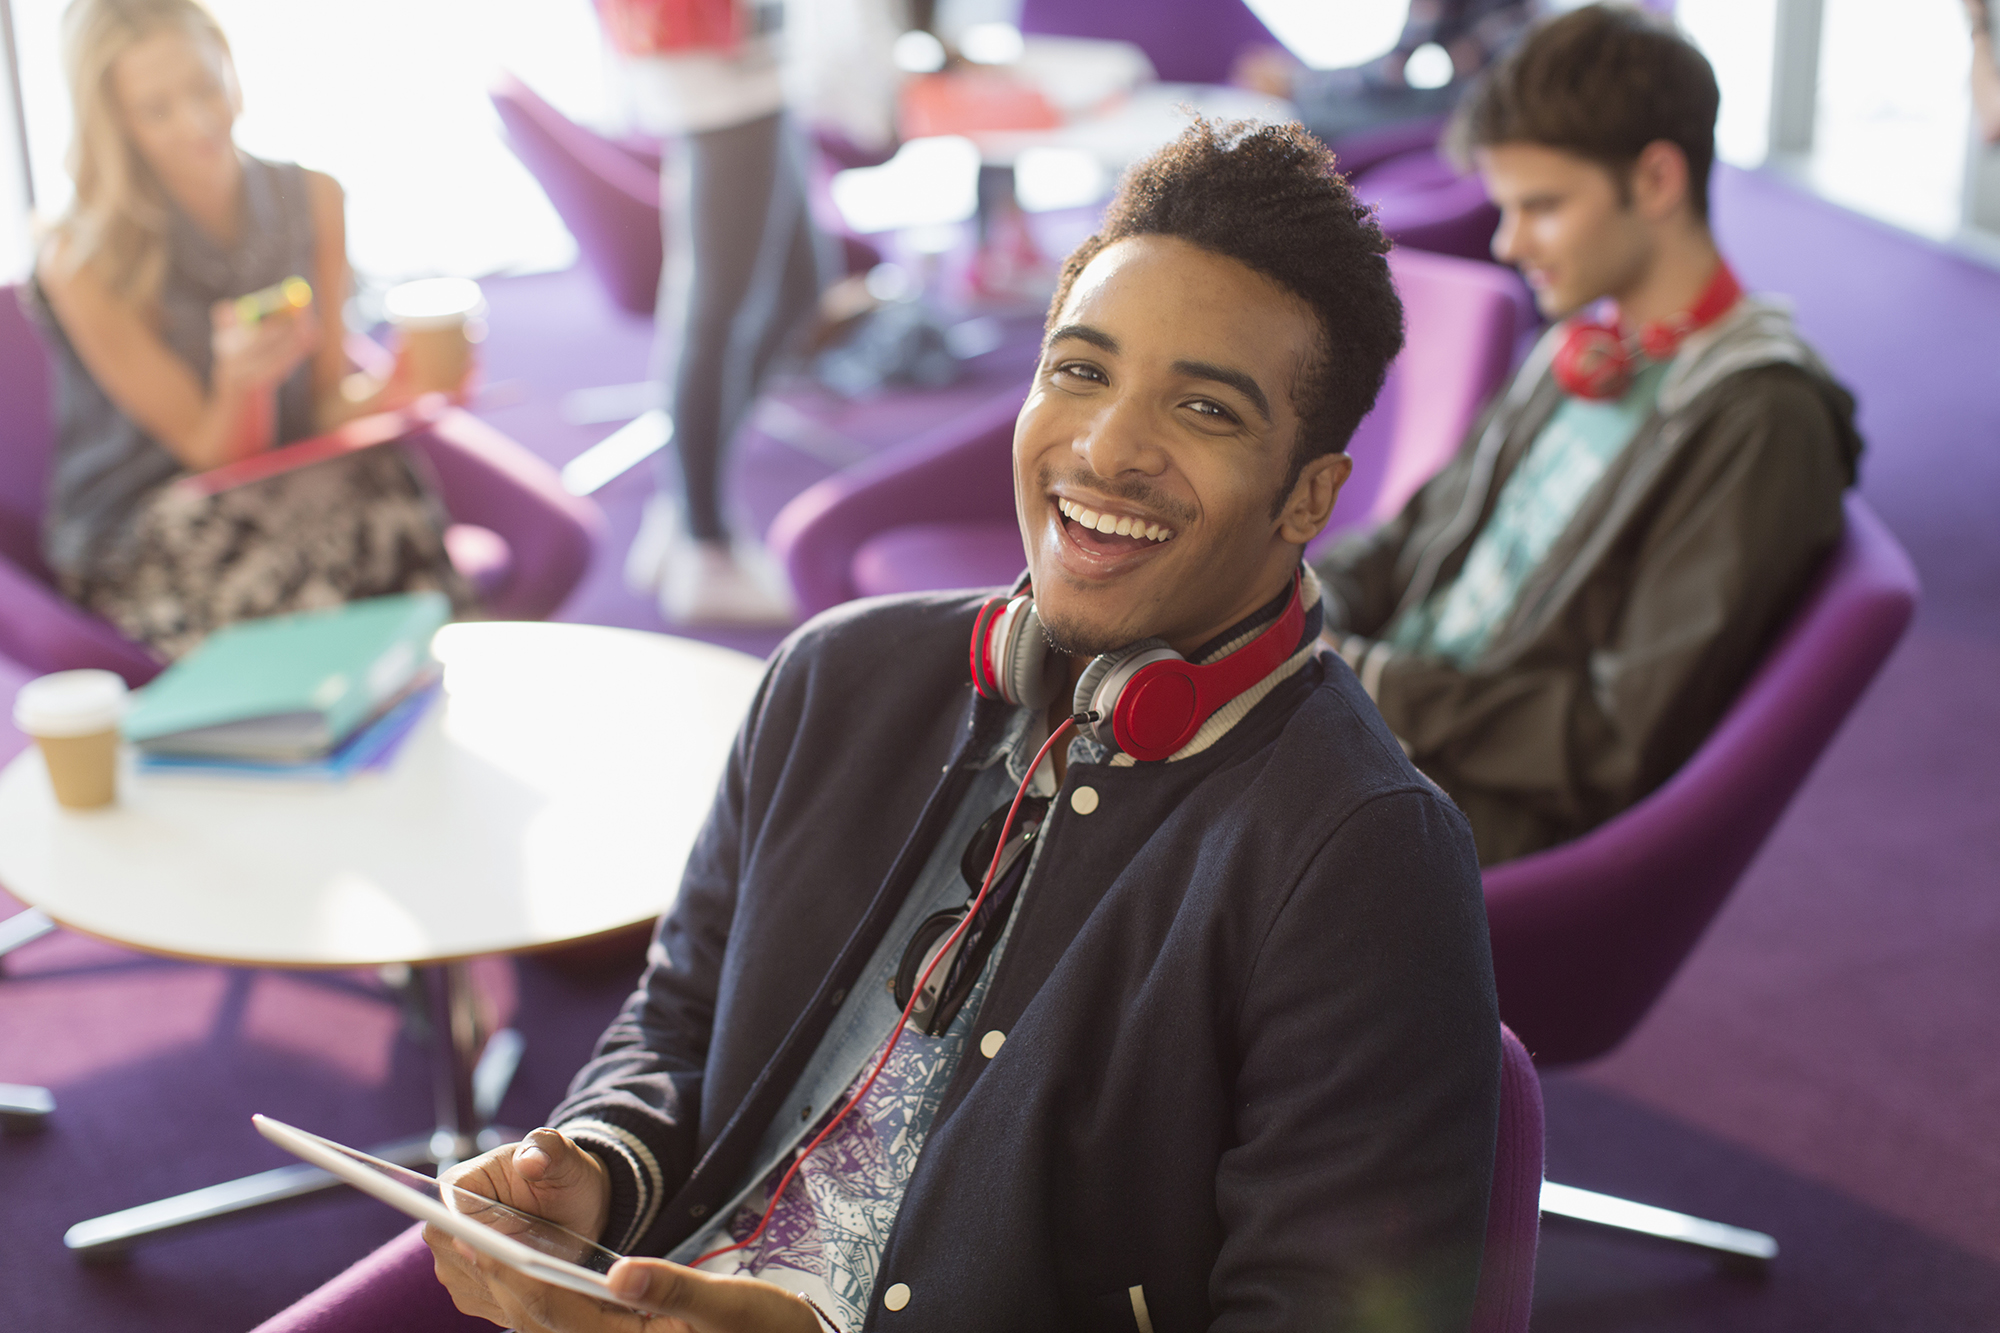 8 stats for landlords and letting agents targeting the student market